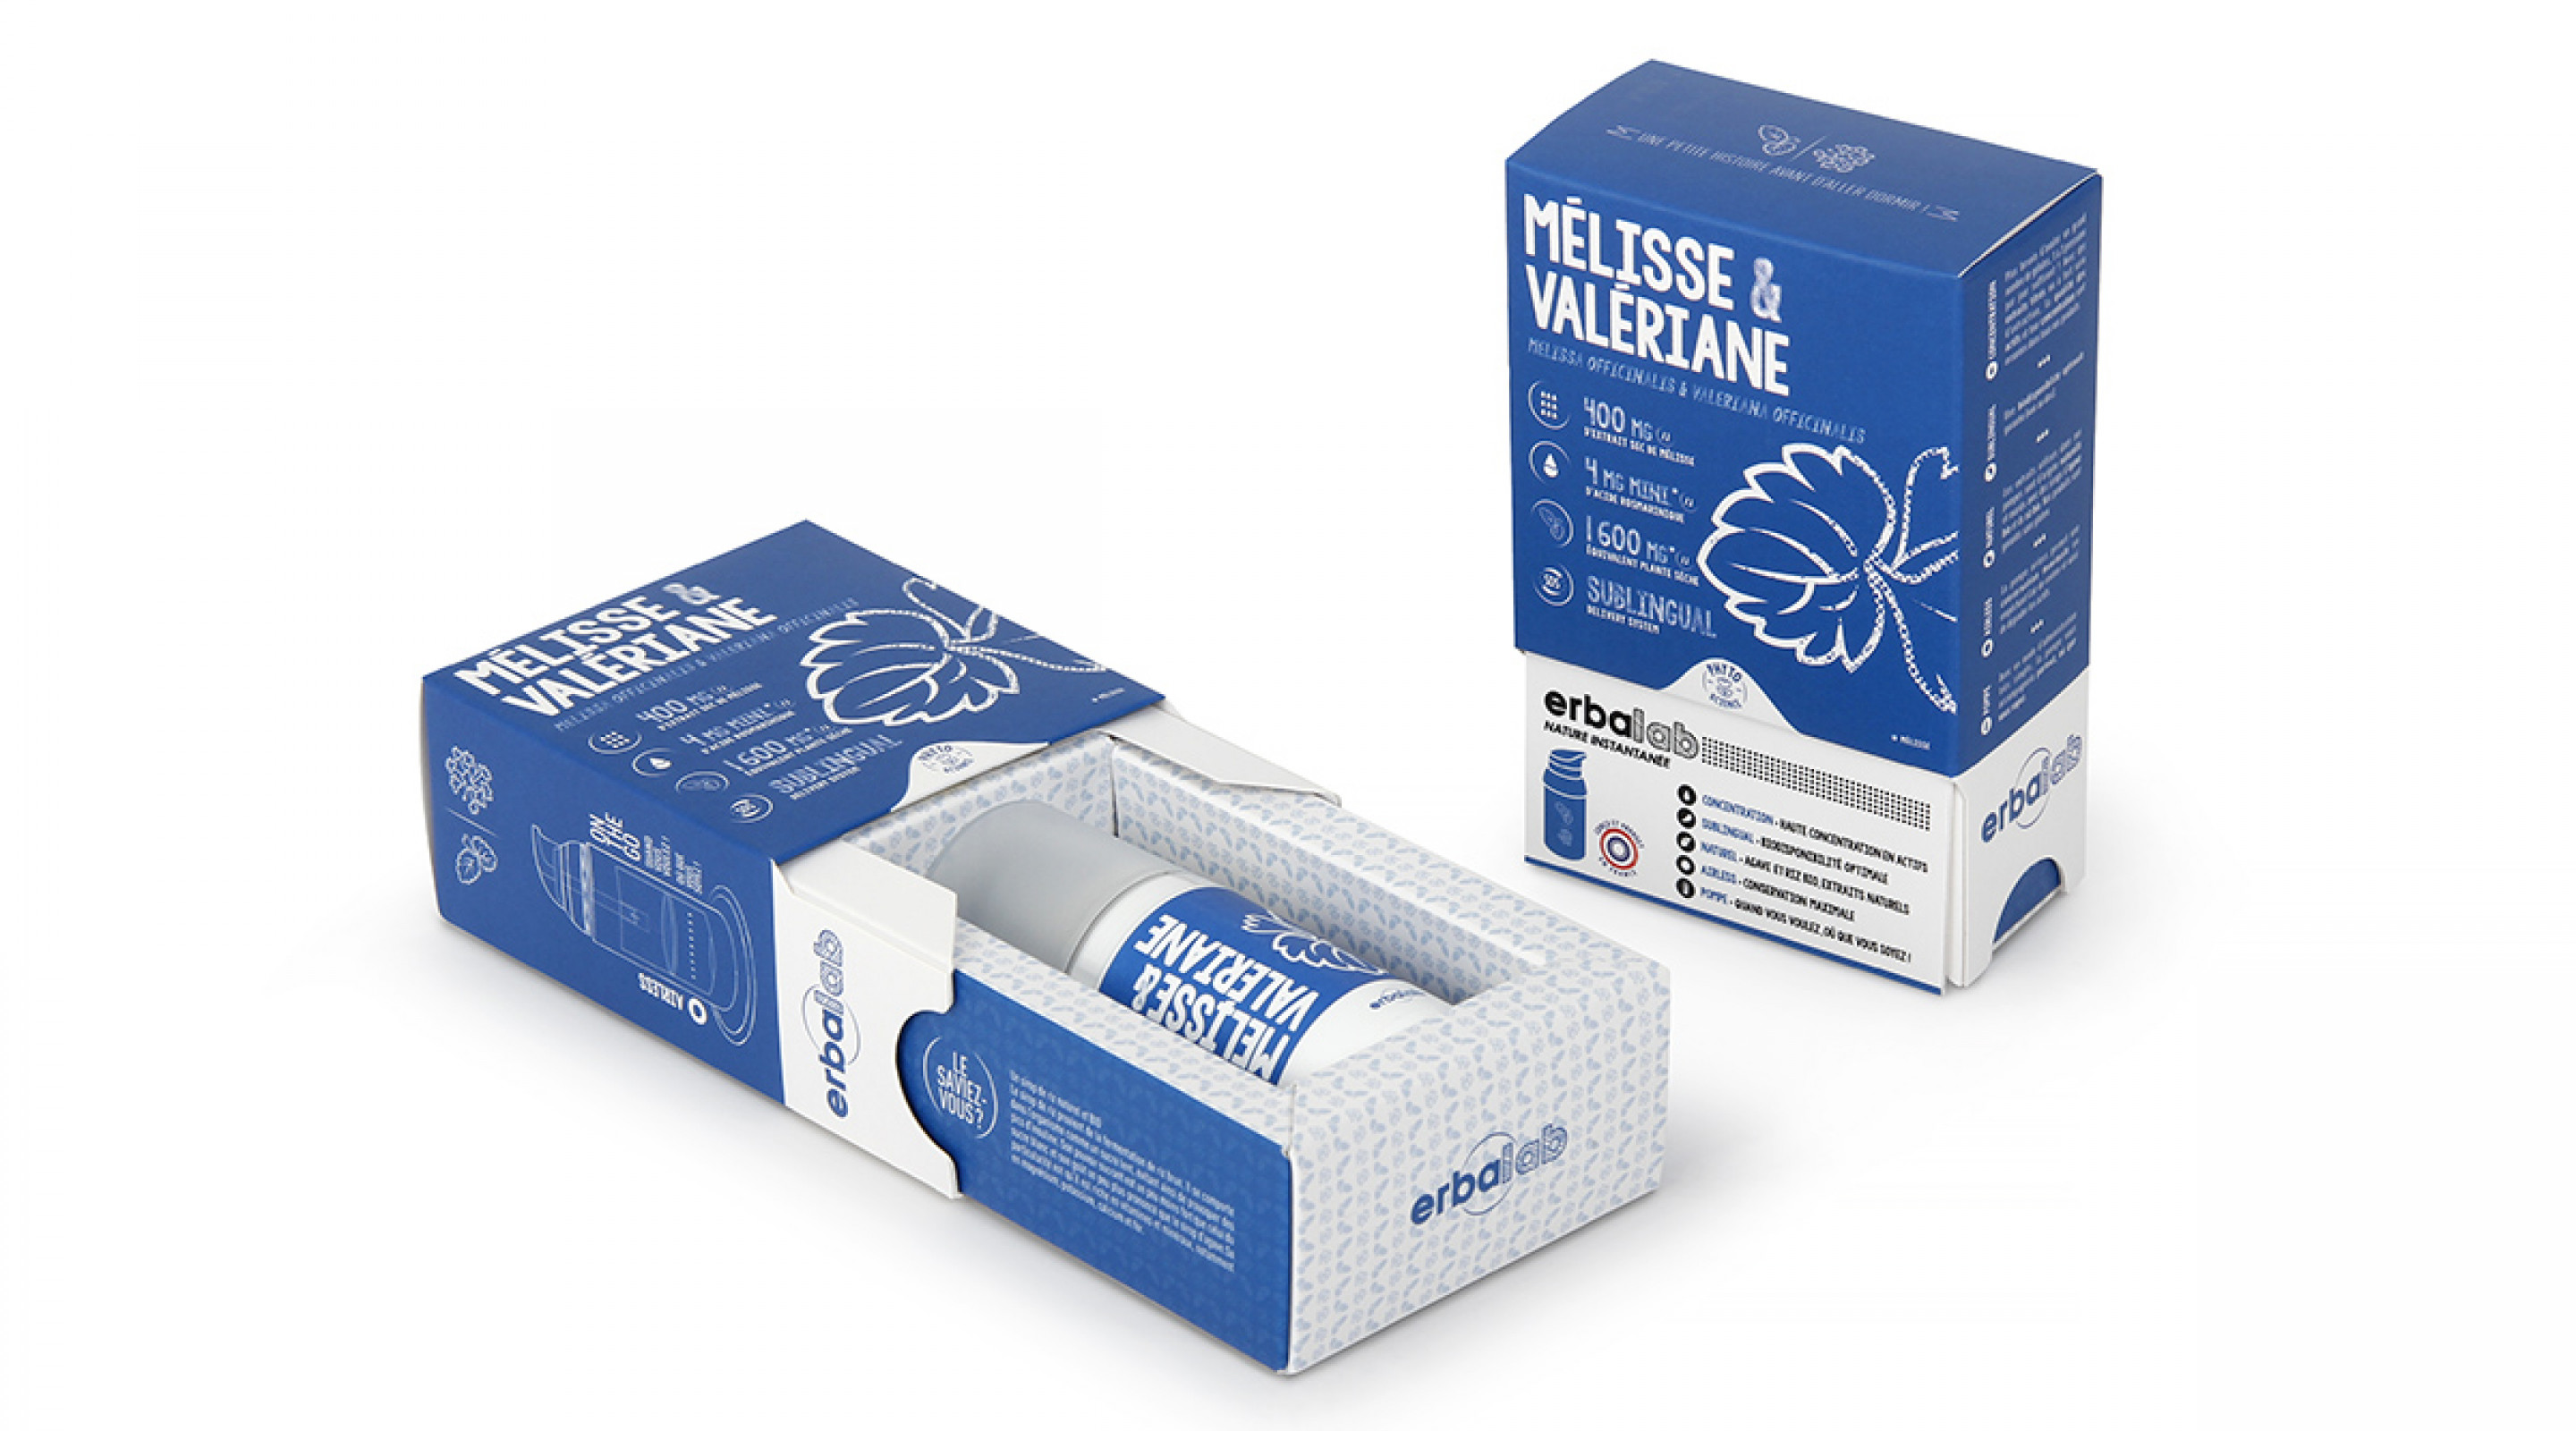 Erbalab Phyto Supplement Pump Packaging